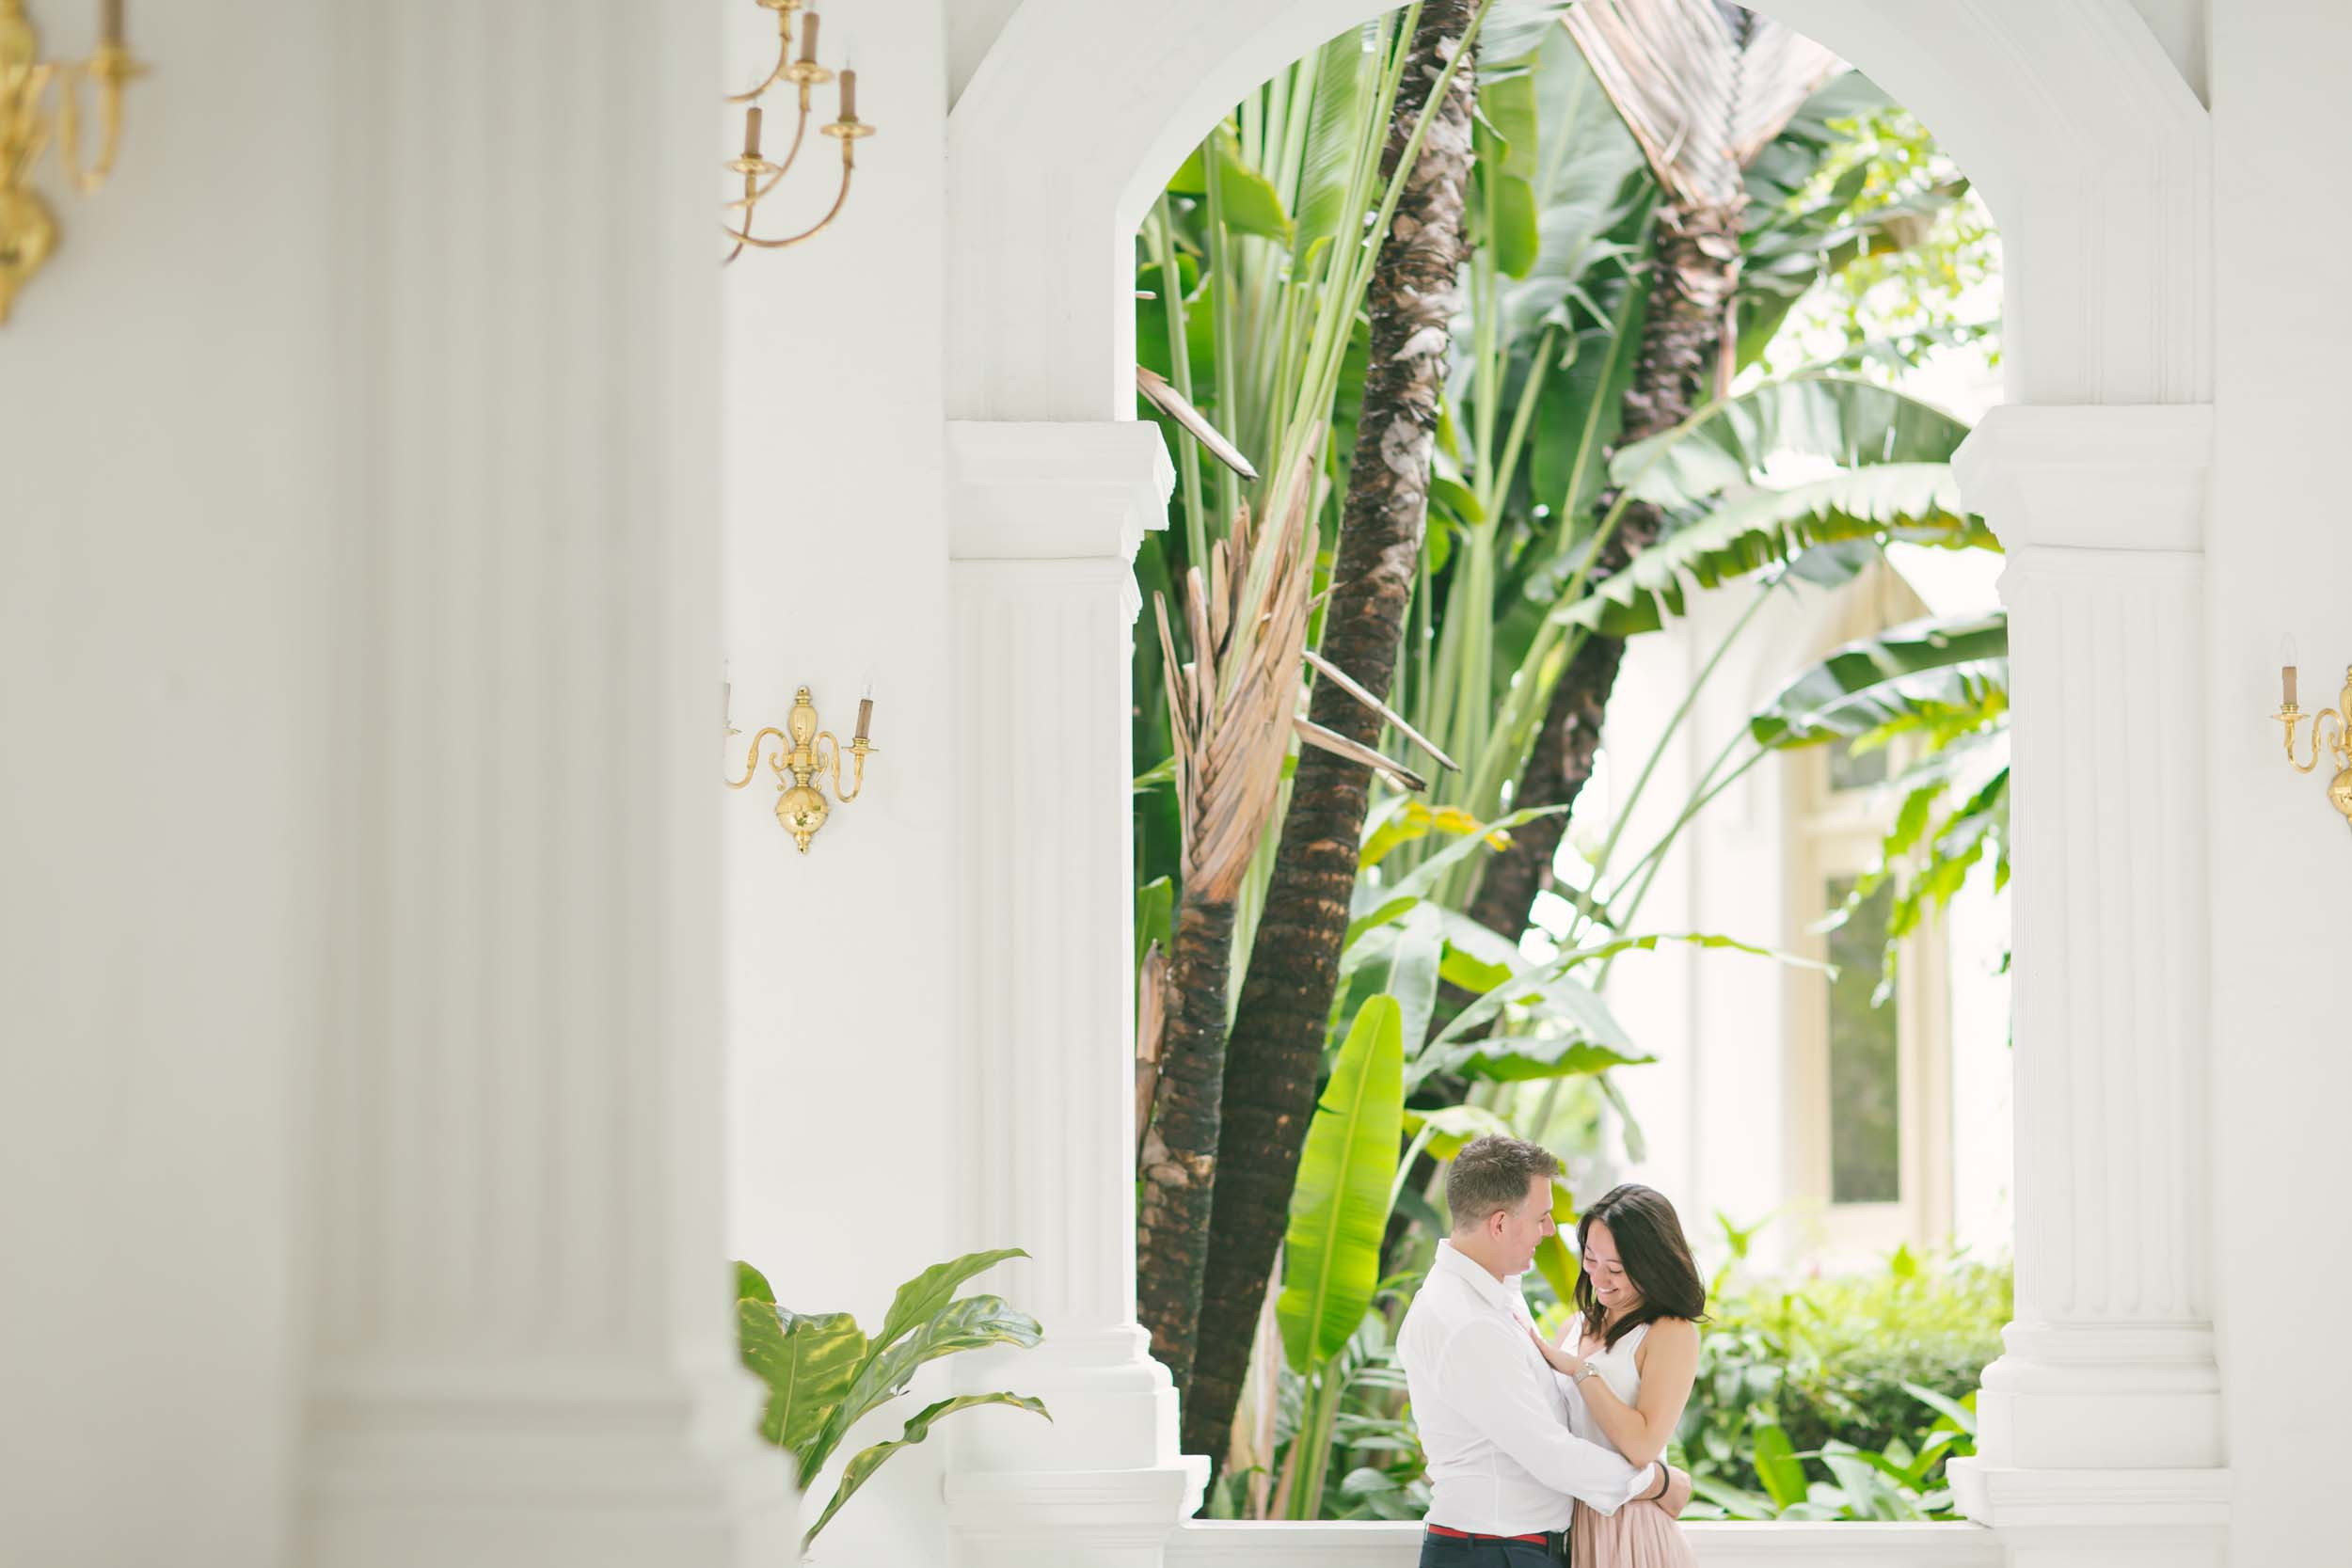 Flytographers:  Michelle & Alvin in Singapore